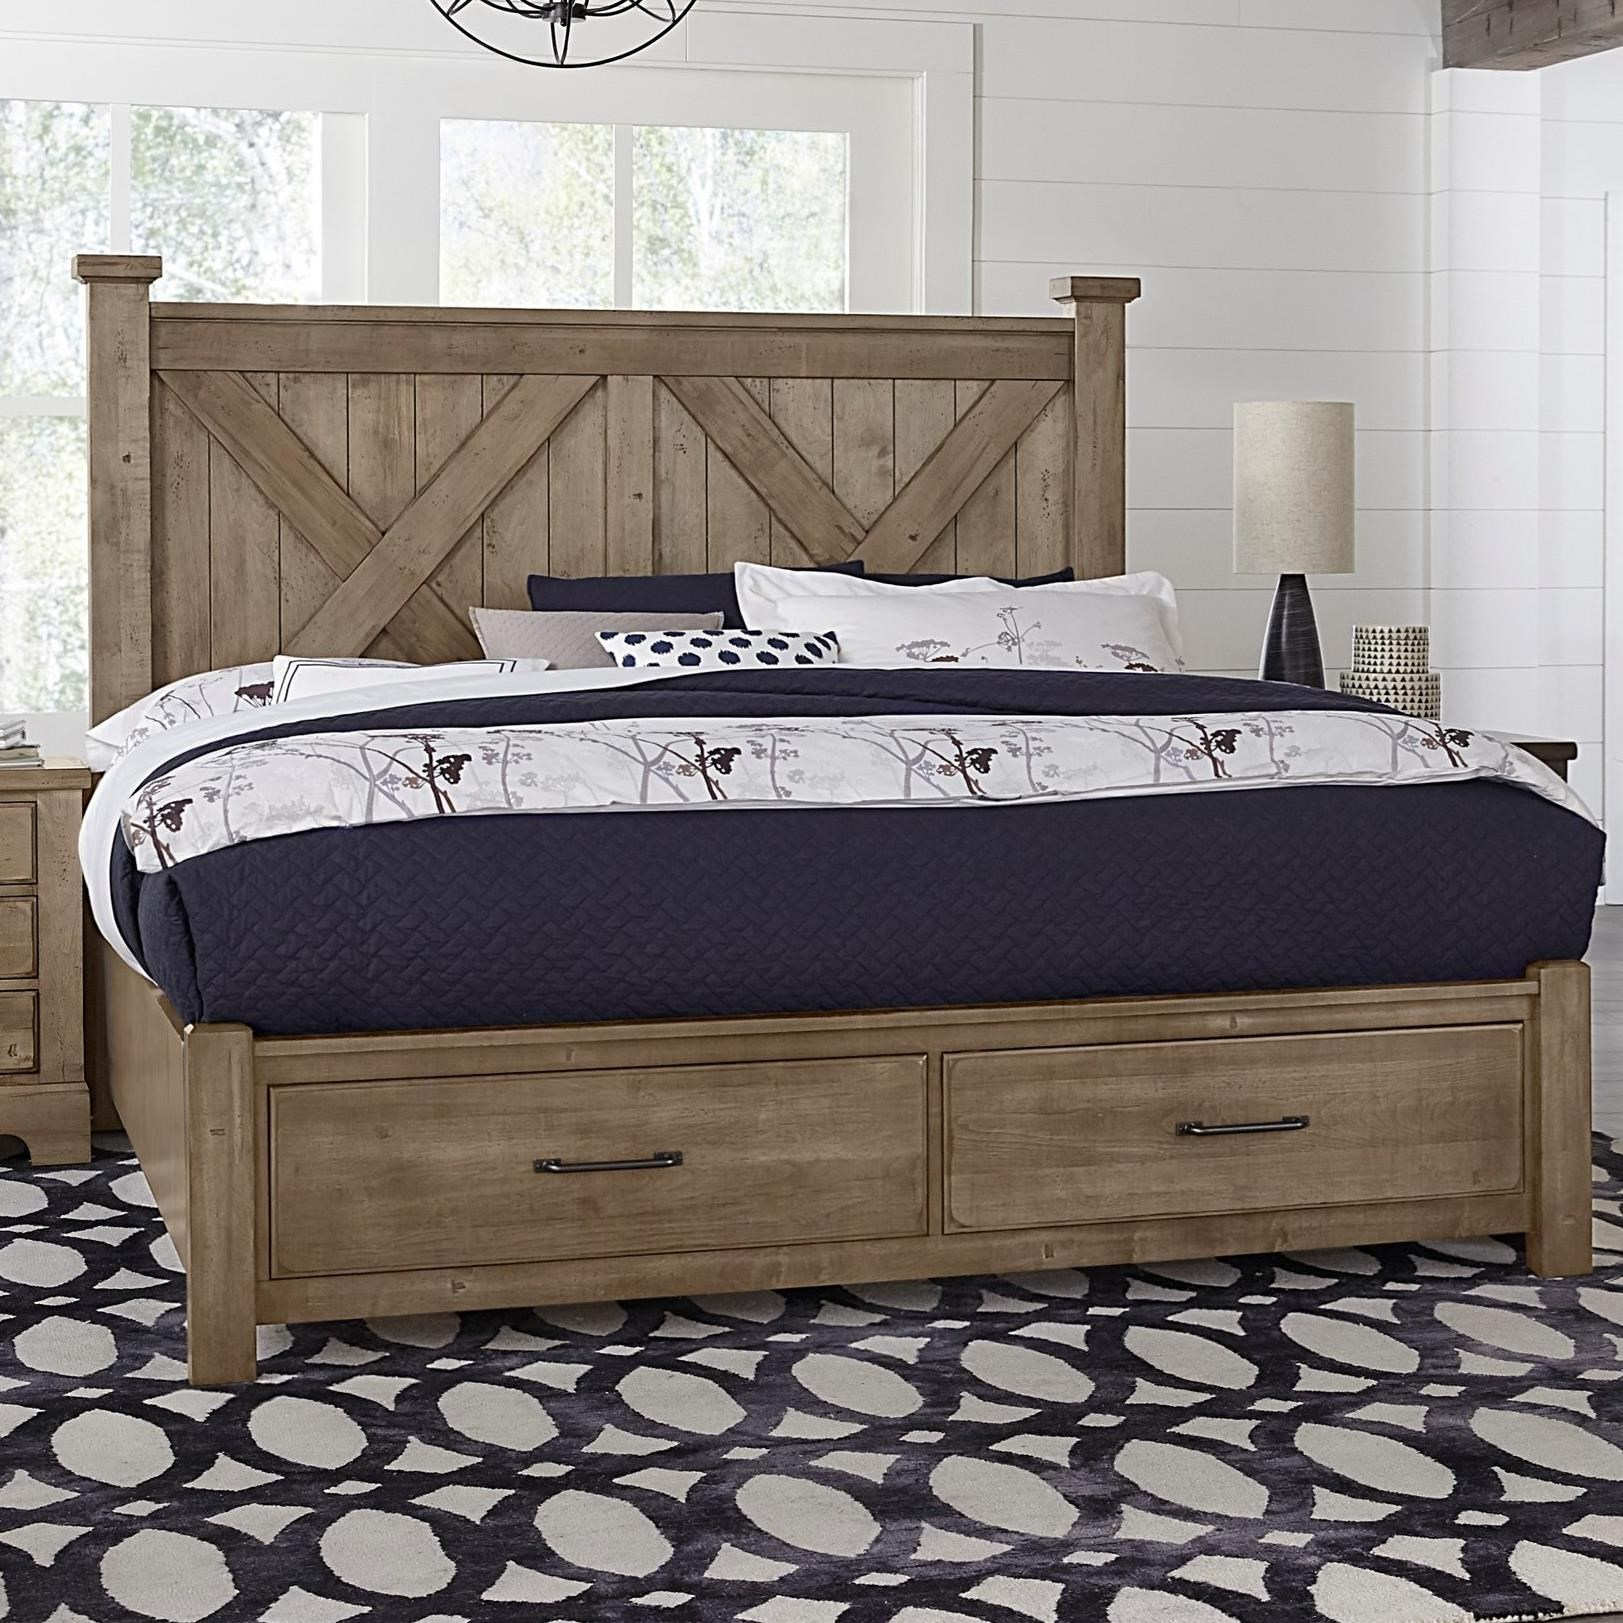 Cool Rustic King X Bed with Storage Footboard by Artisan & Post at Rooms and Rest